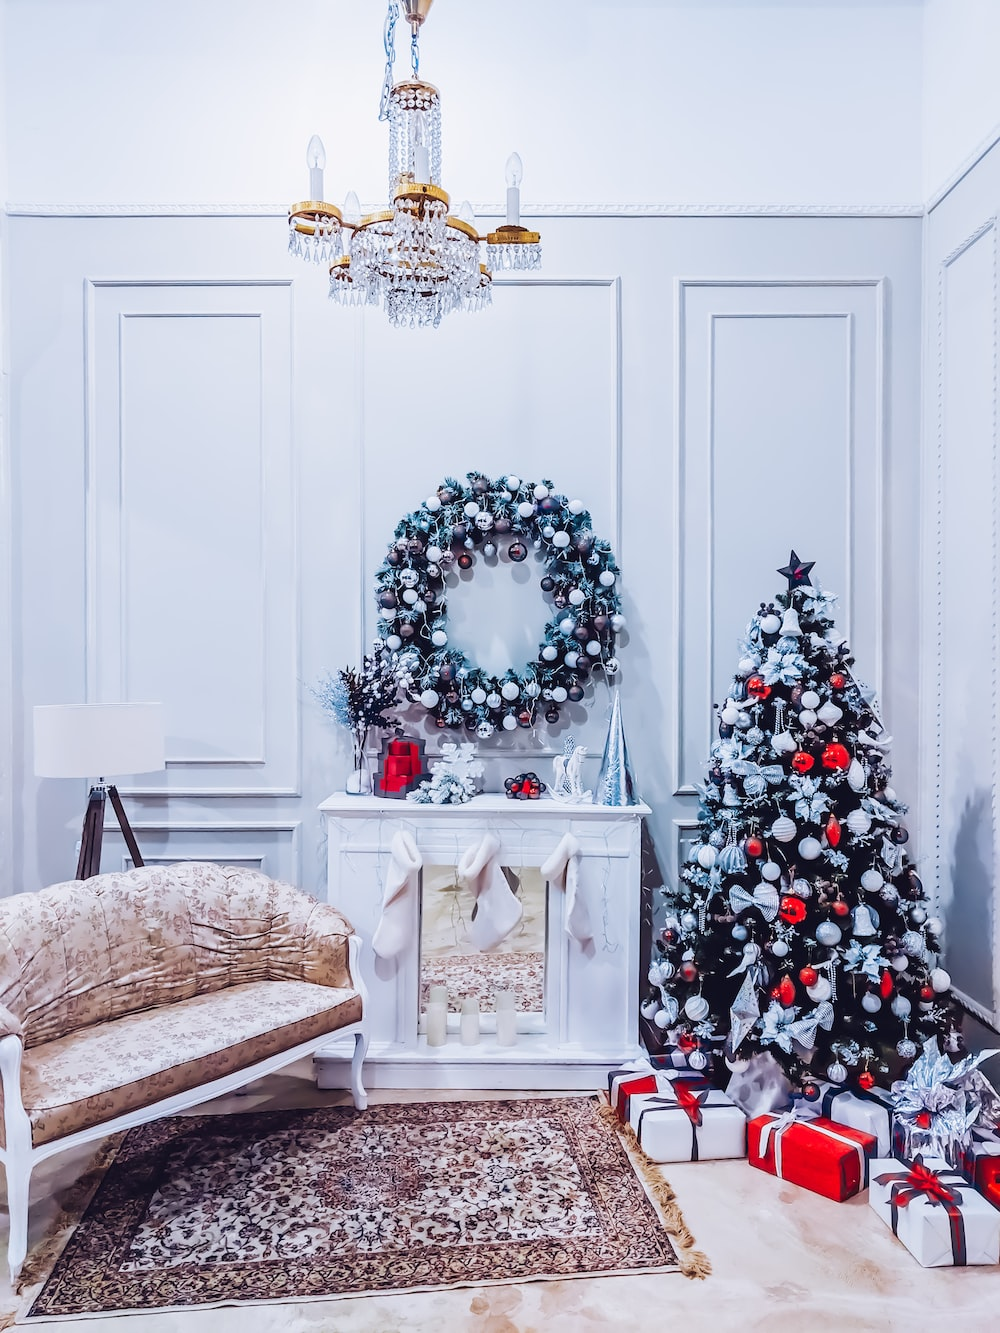 green Christmas and wreath decors